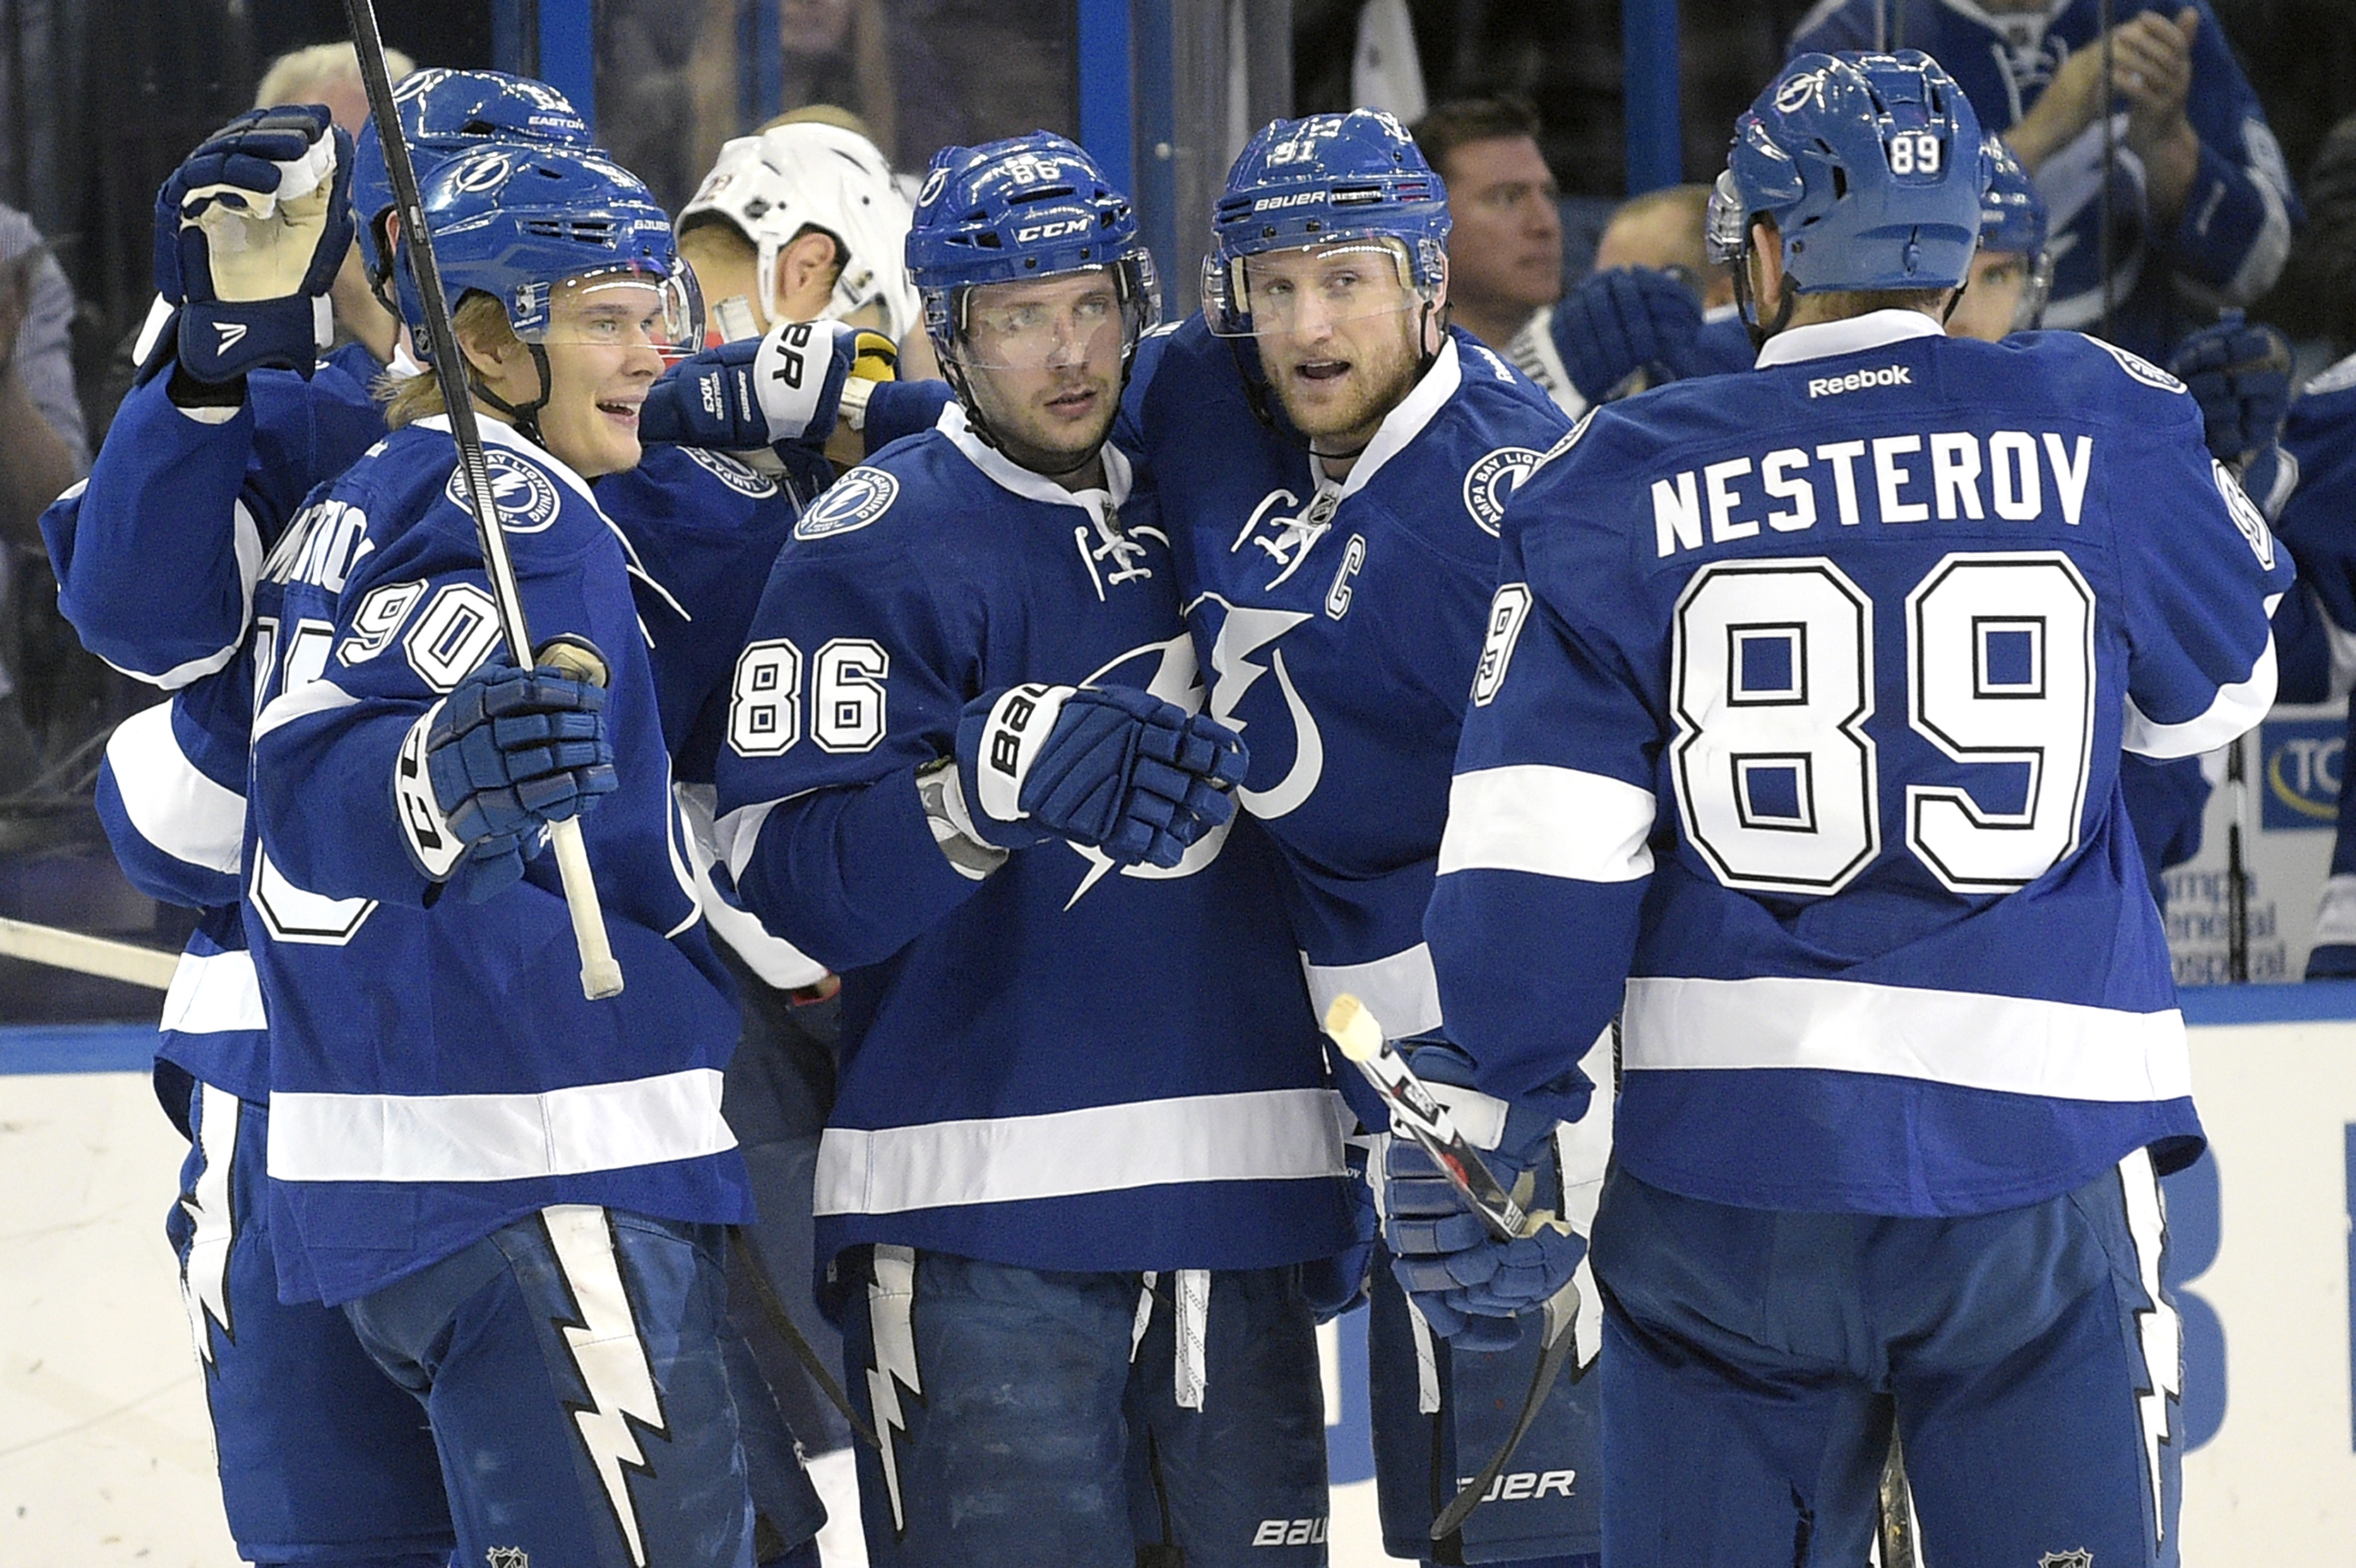 Tampa Bay Lightning right wing Nikita Kucherov (86), of Russia, is congratulated by center Vladislav Namestnikov (90), of Russia, center Steven Stamkos (91) and defenseman Nikita Nesterov (89), of Russia, after scoring during the second period of an NHL h